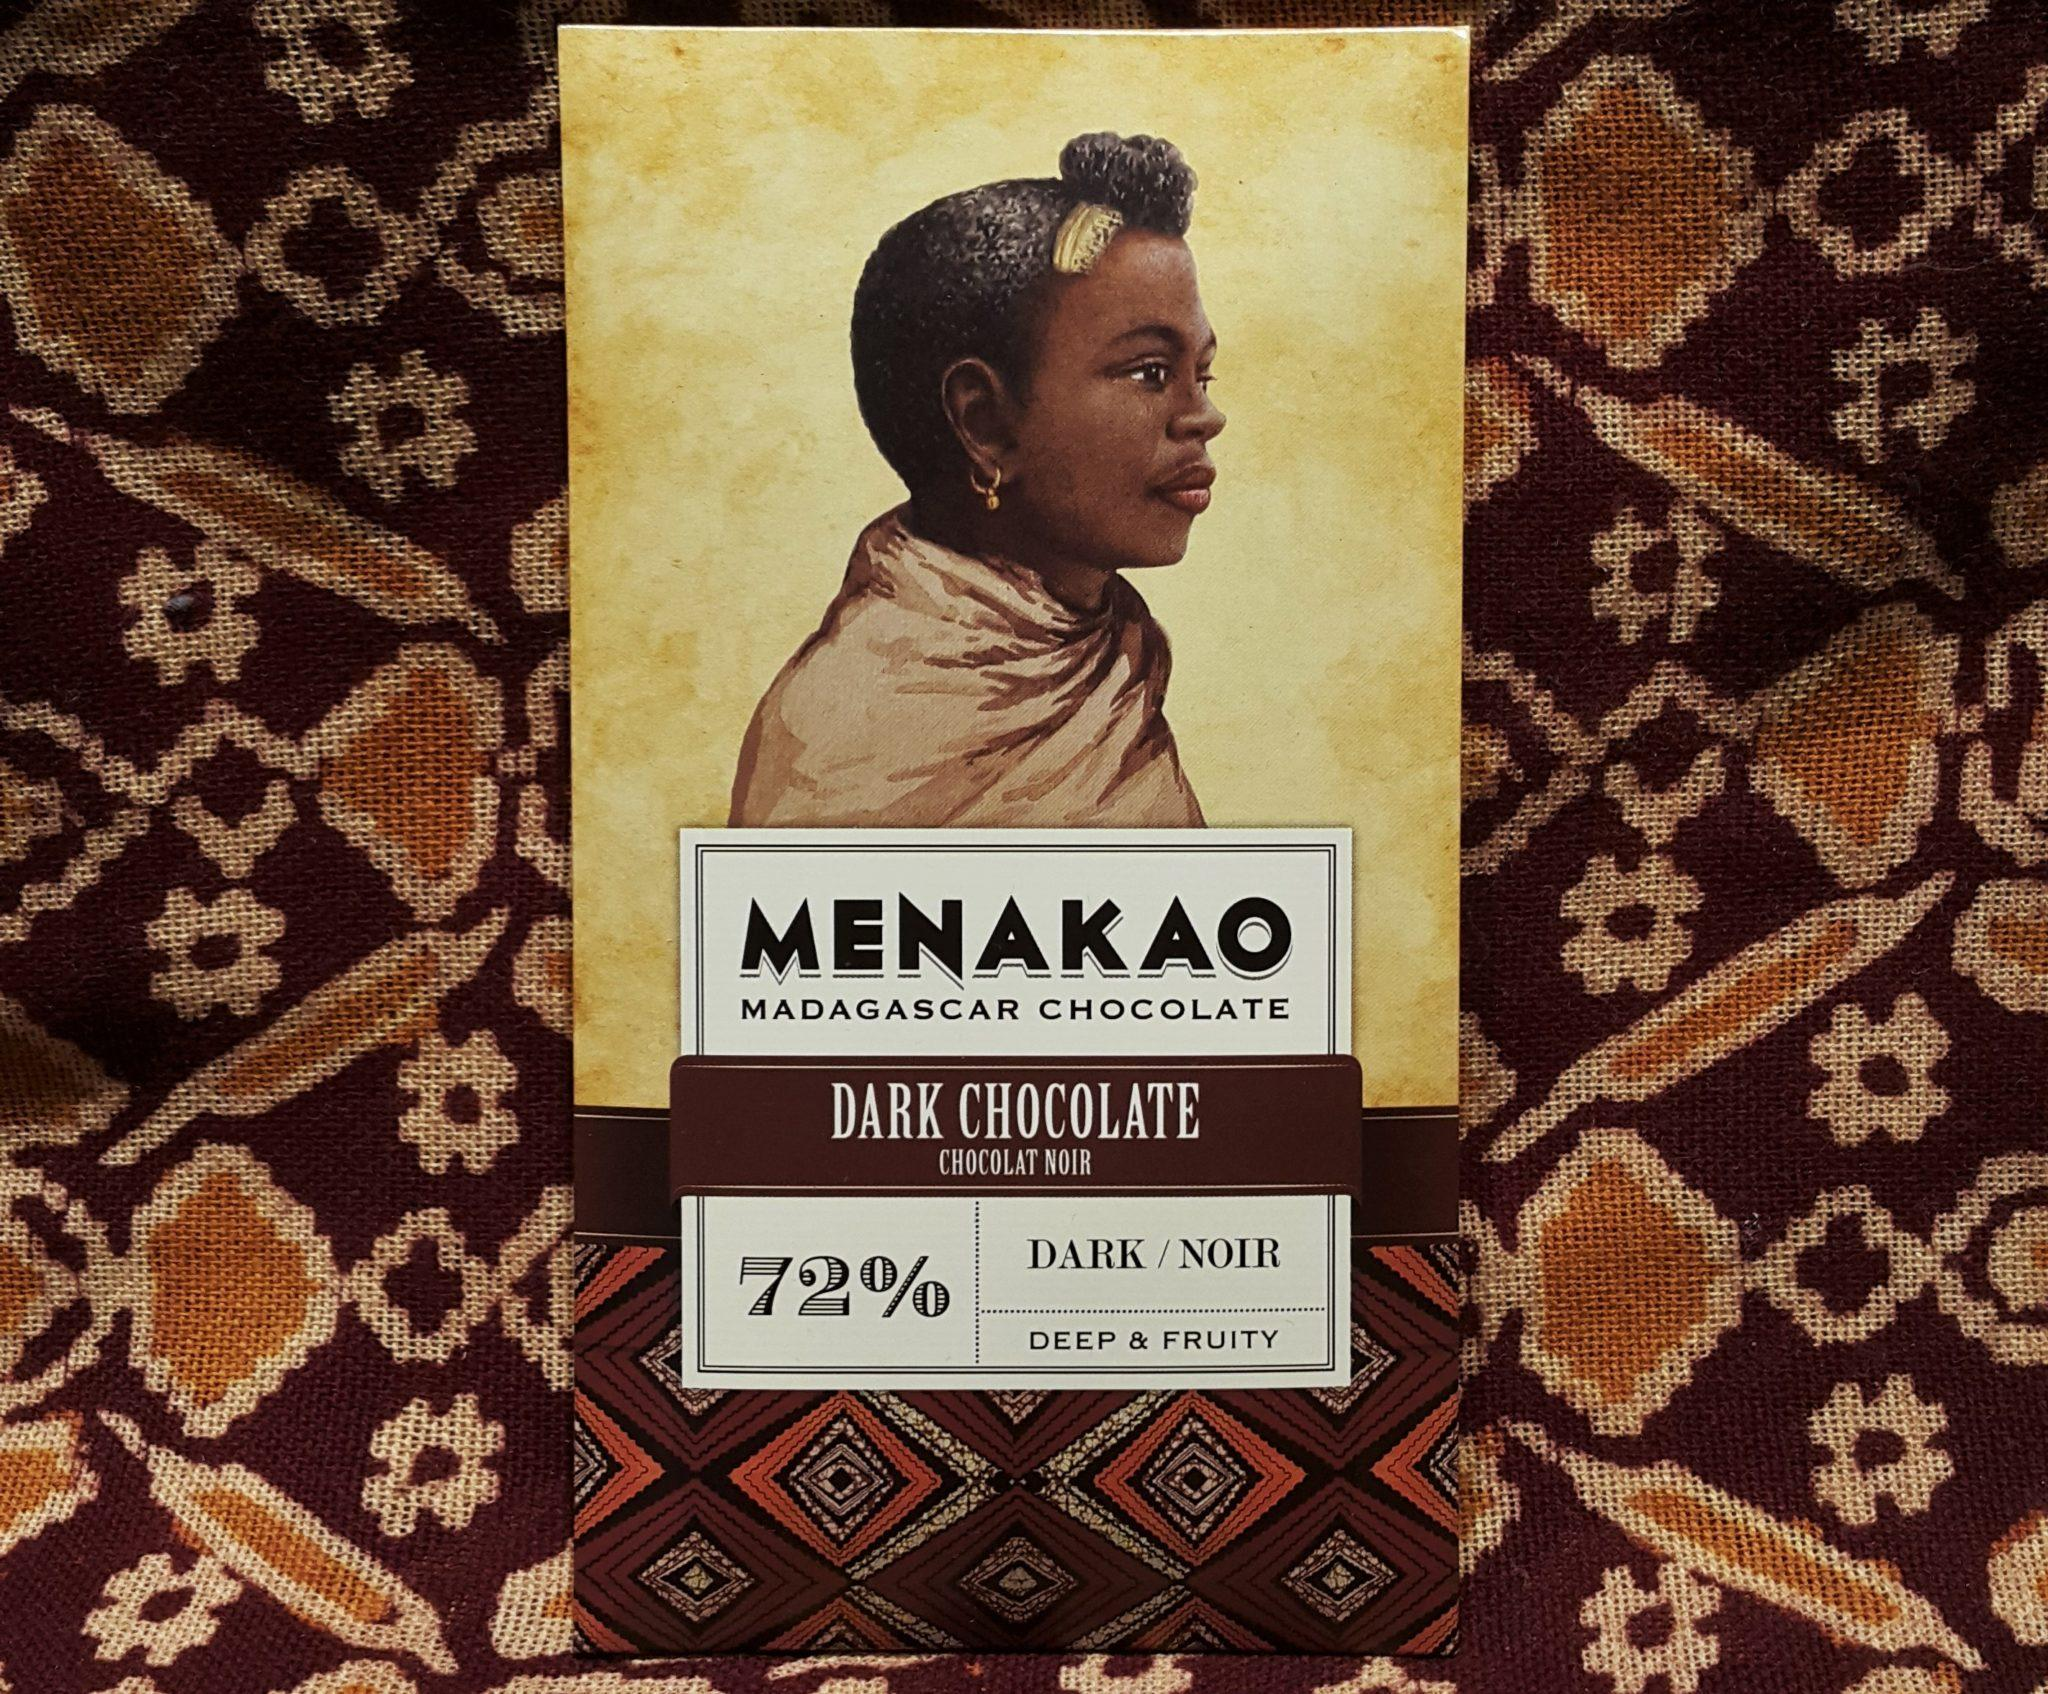 Menakao Madagascan Chocolate 72% Dark Front of Bar Packaging on Top of Orange Fabric